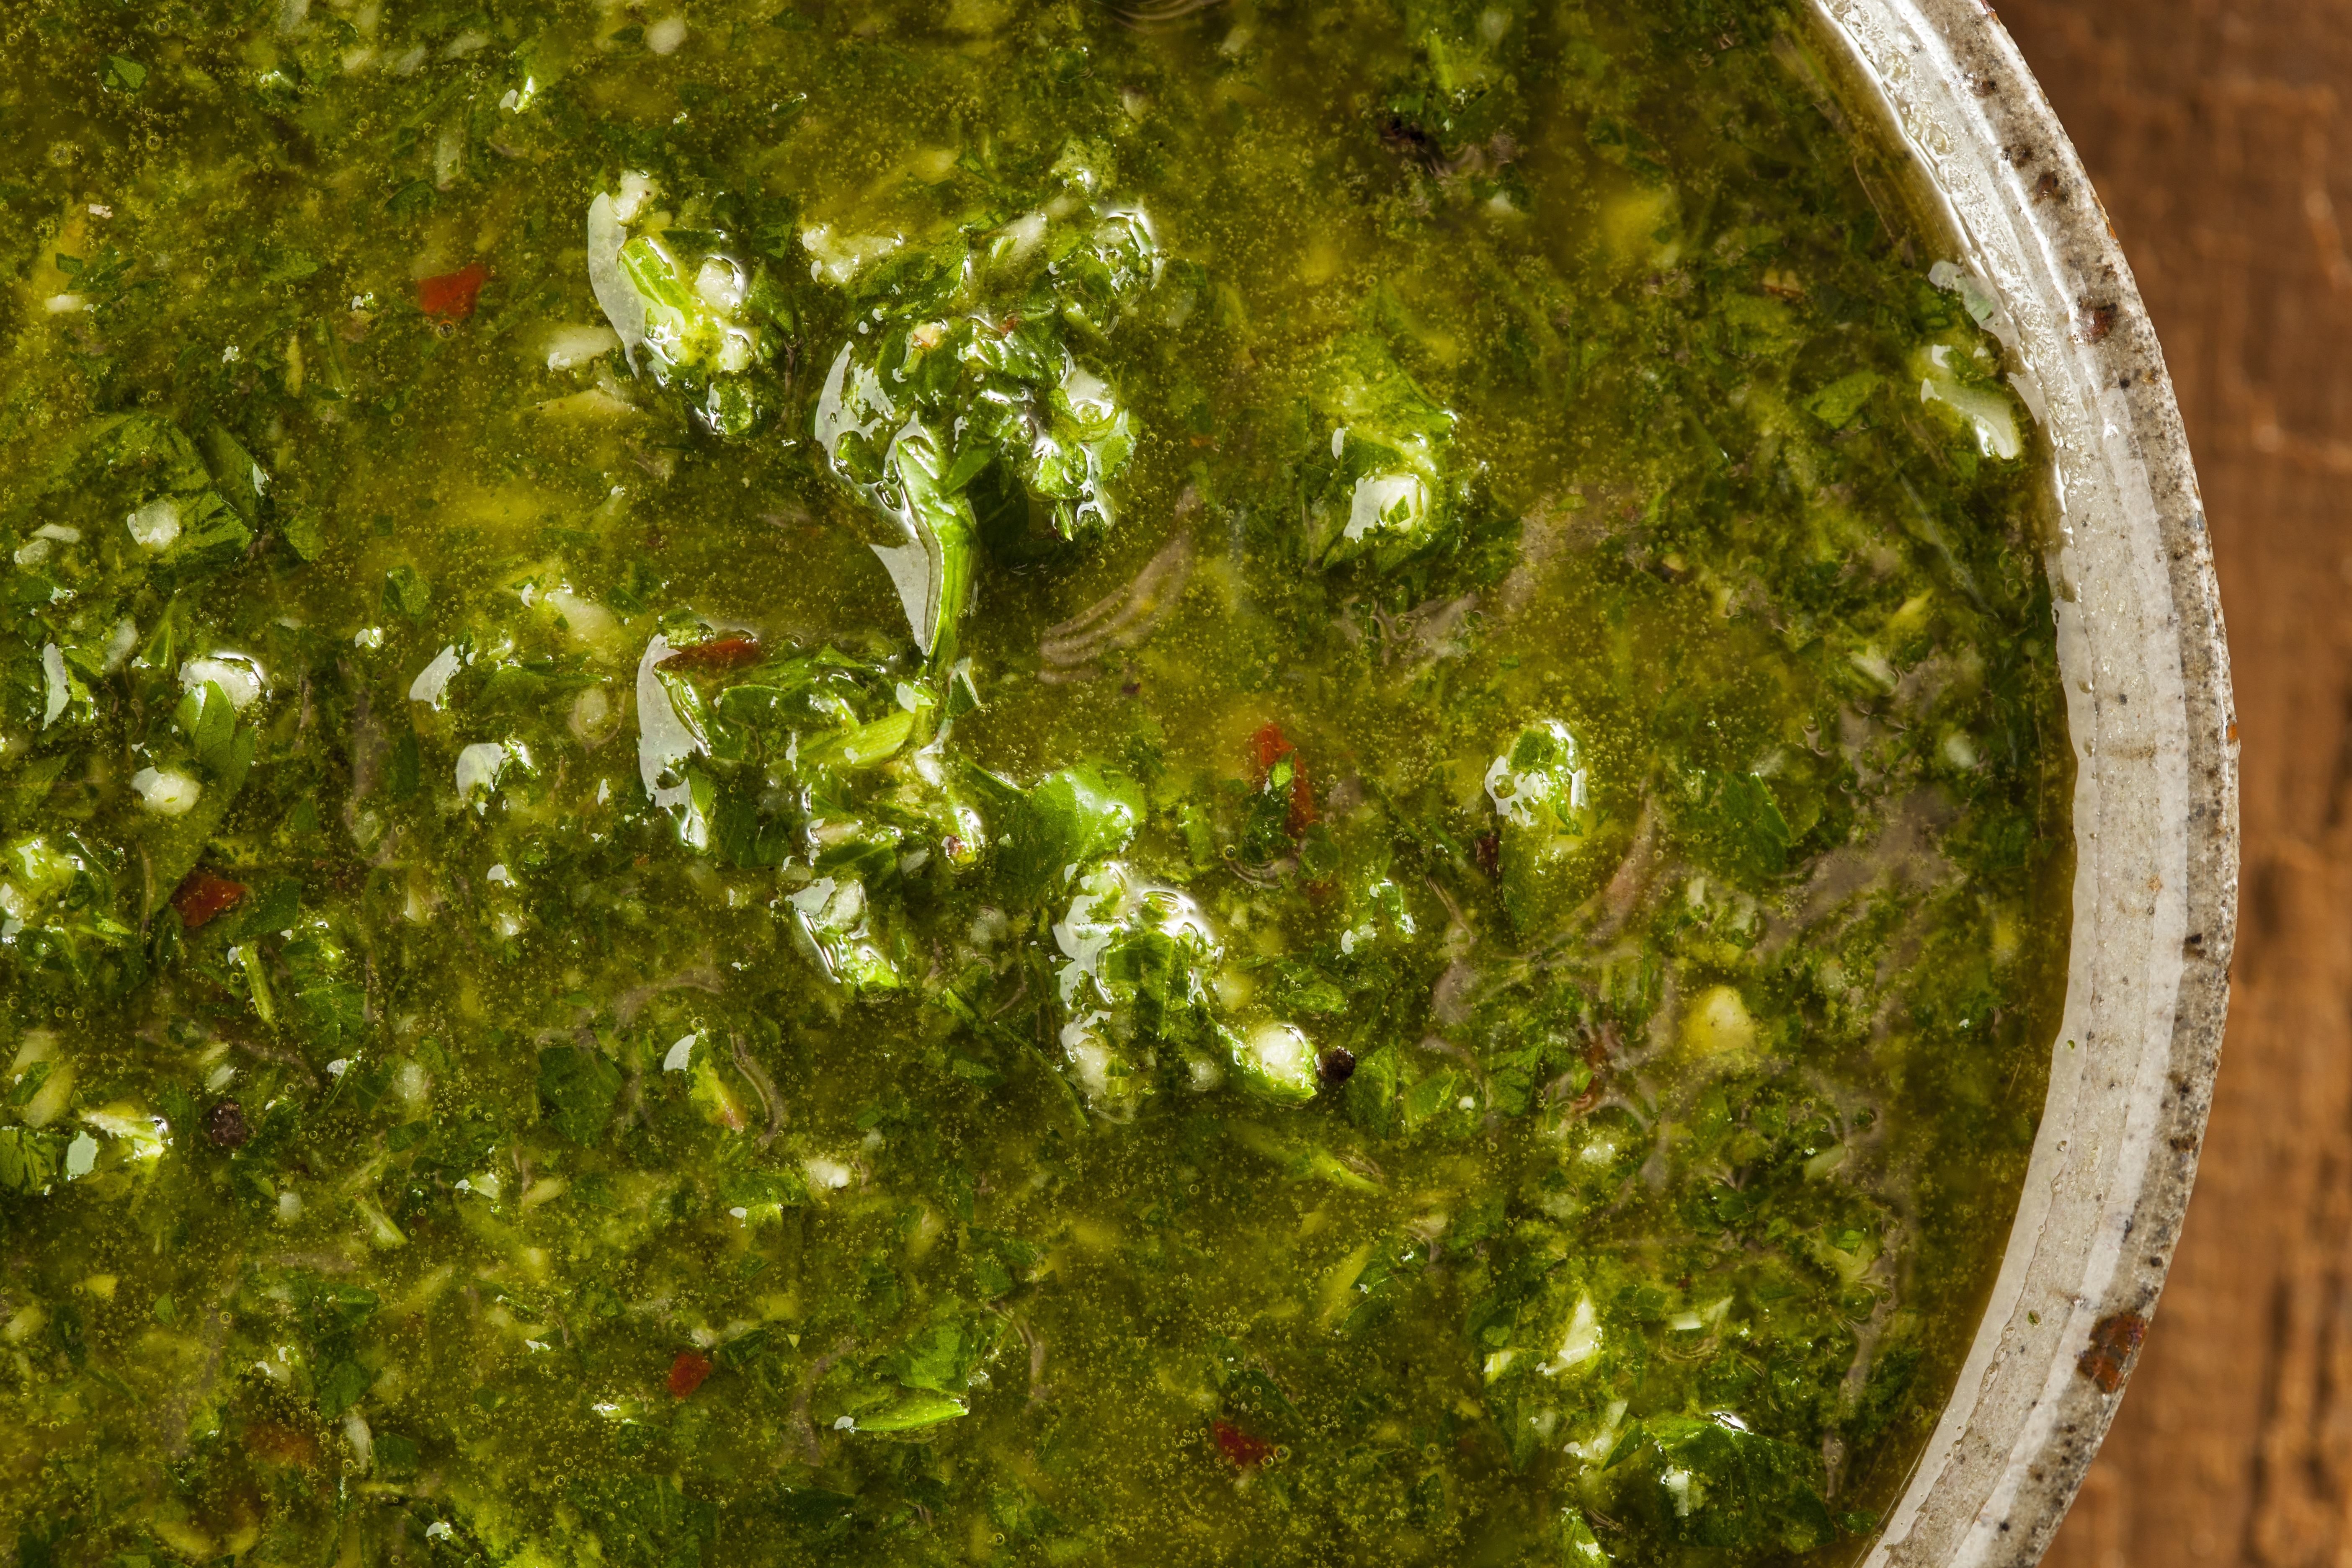 Homemade Green Chimichurri Sauce in a Bowl